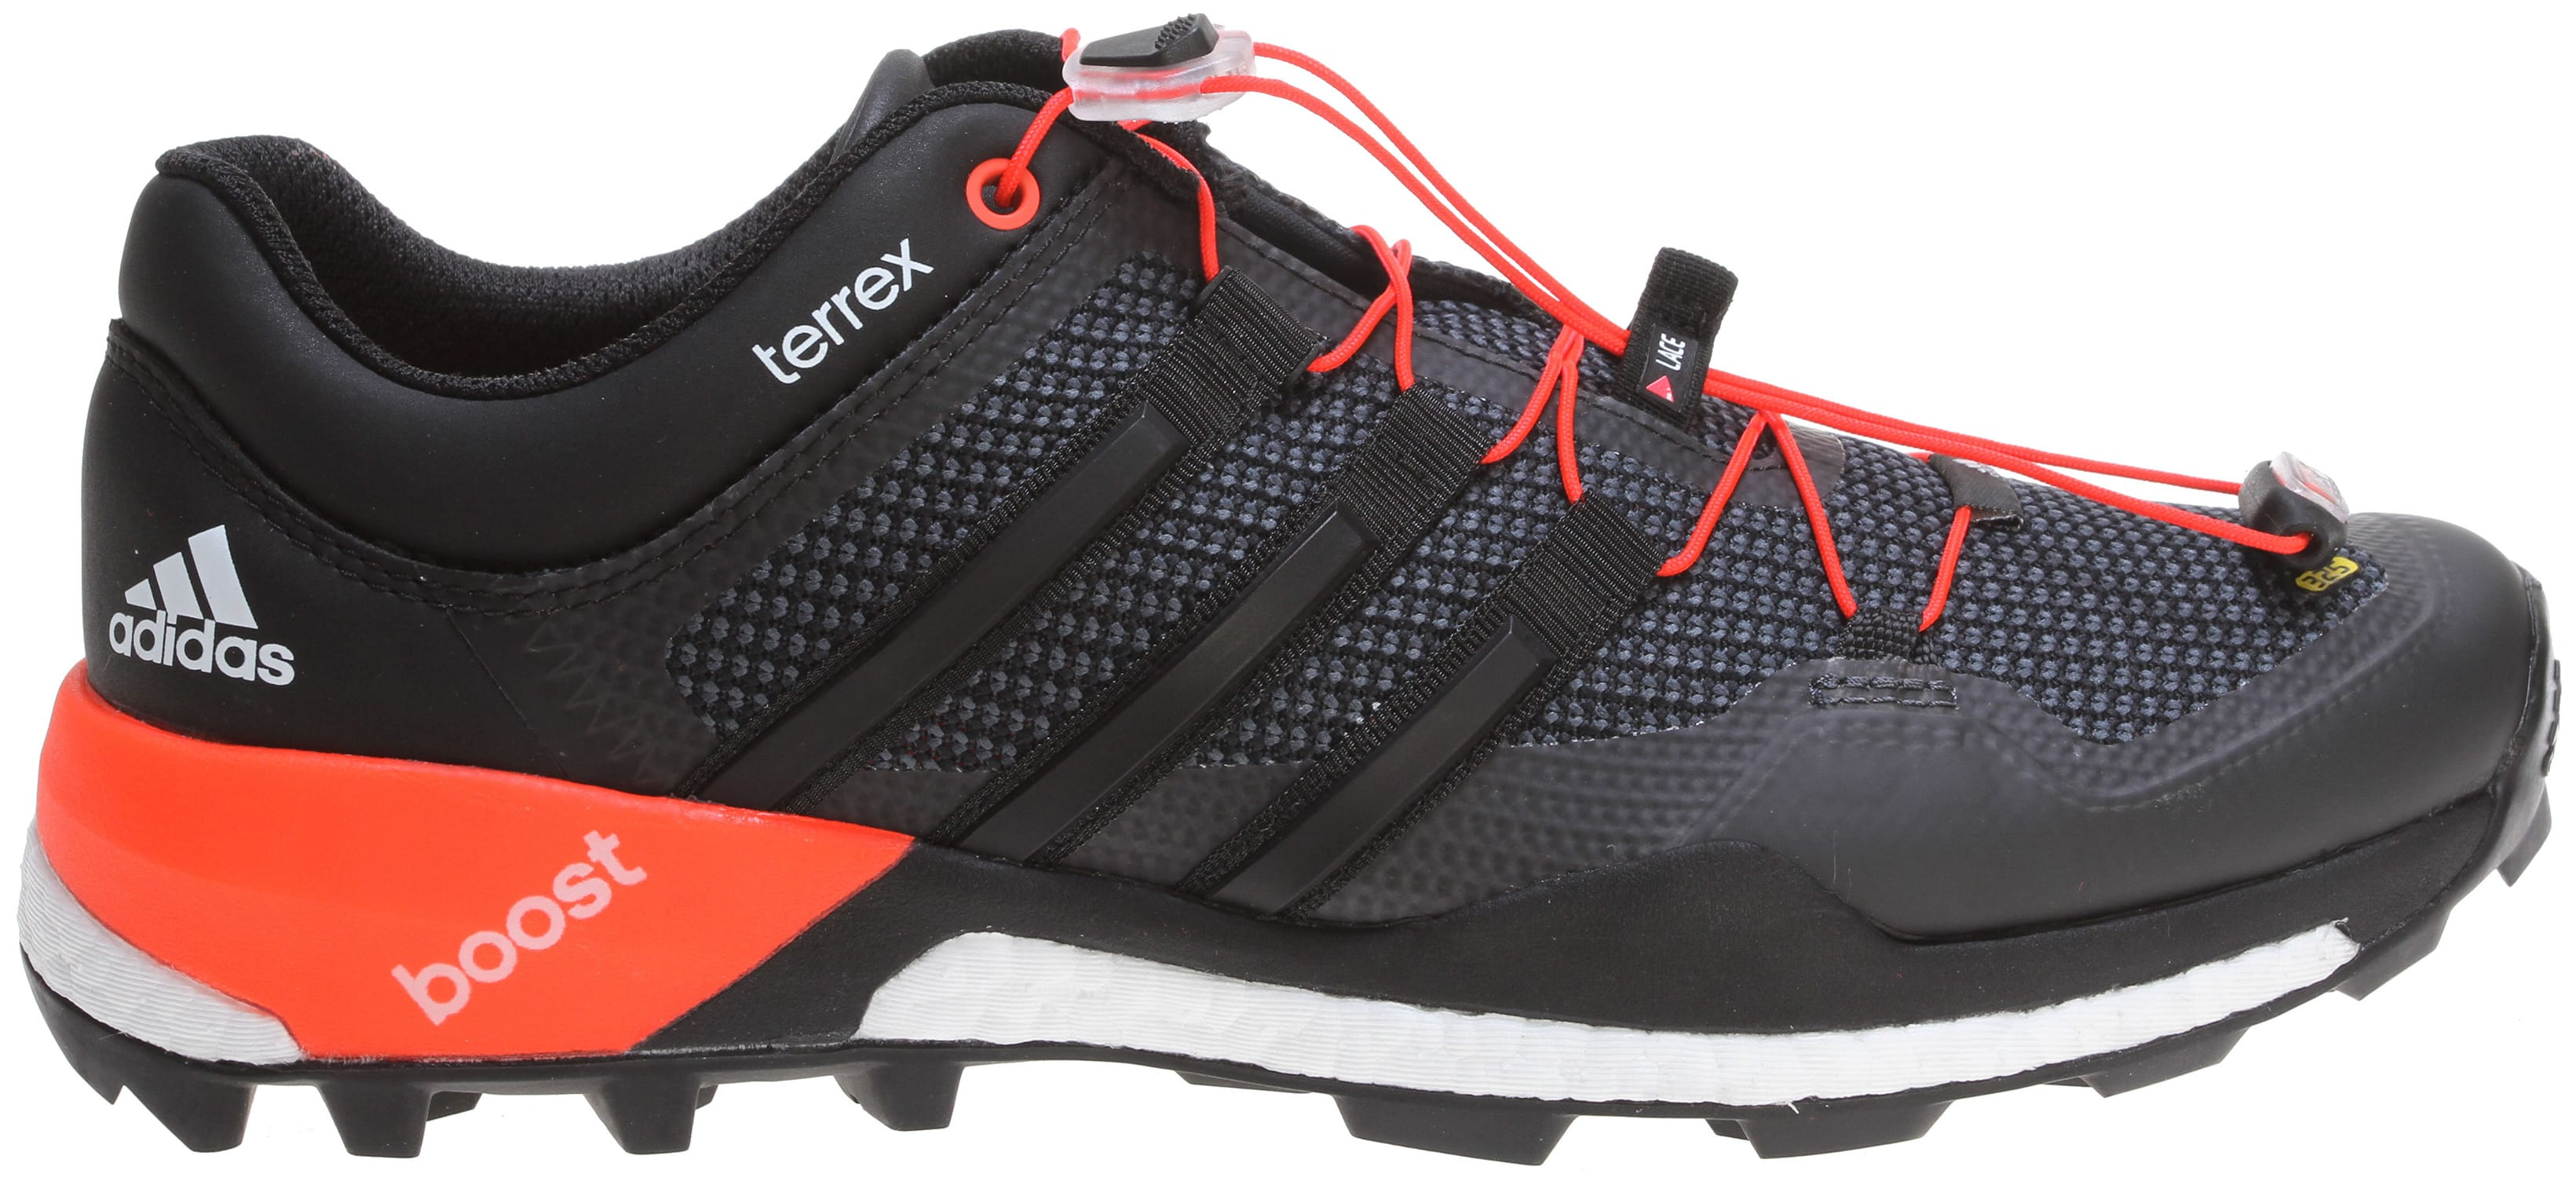 terex adidas shoes